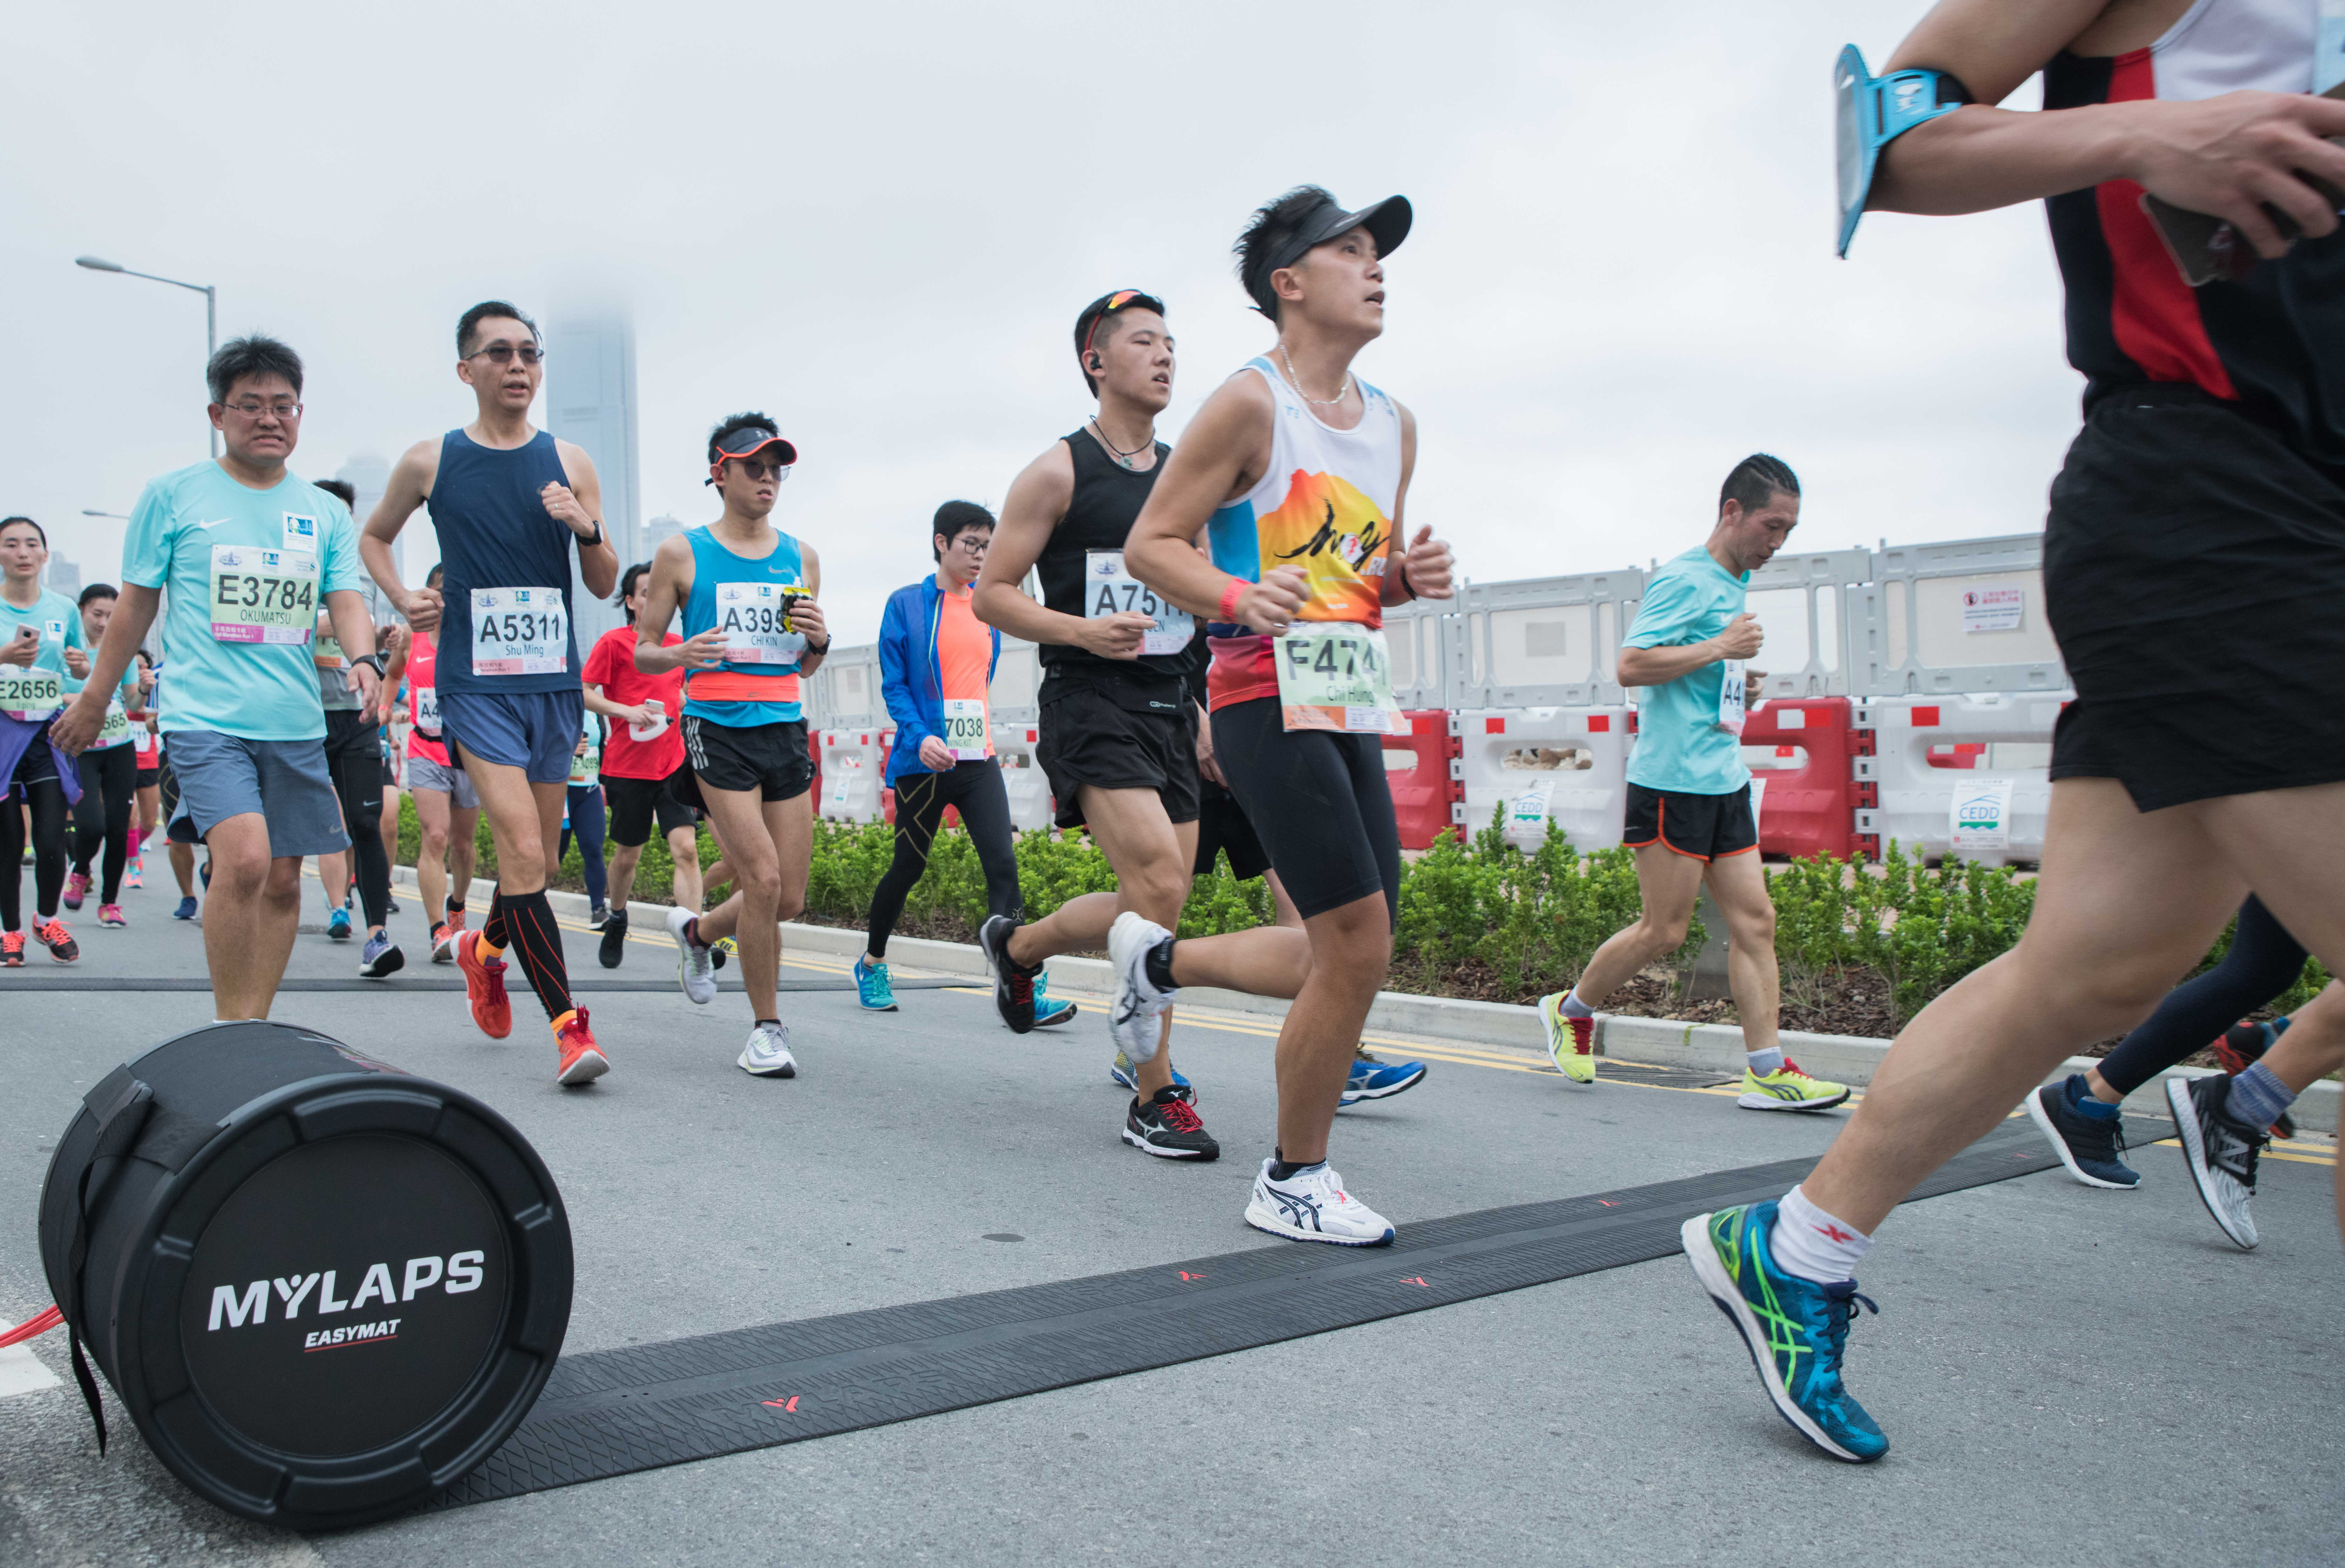 Behind the scenes of the Hong Kong Marathon 2